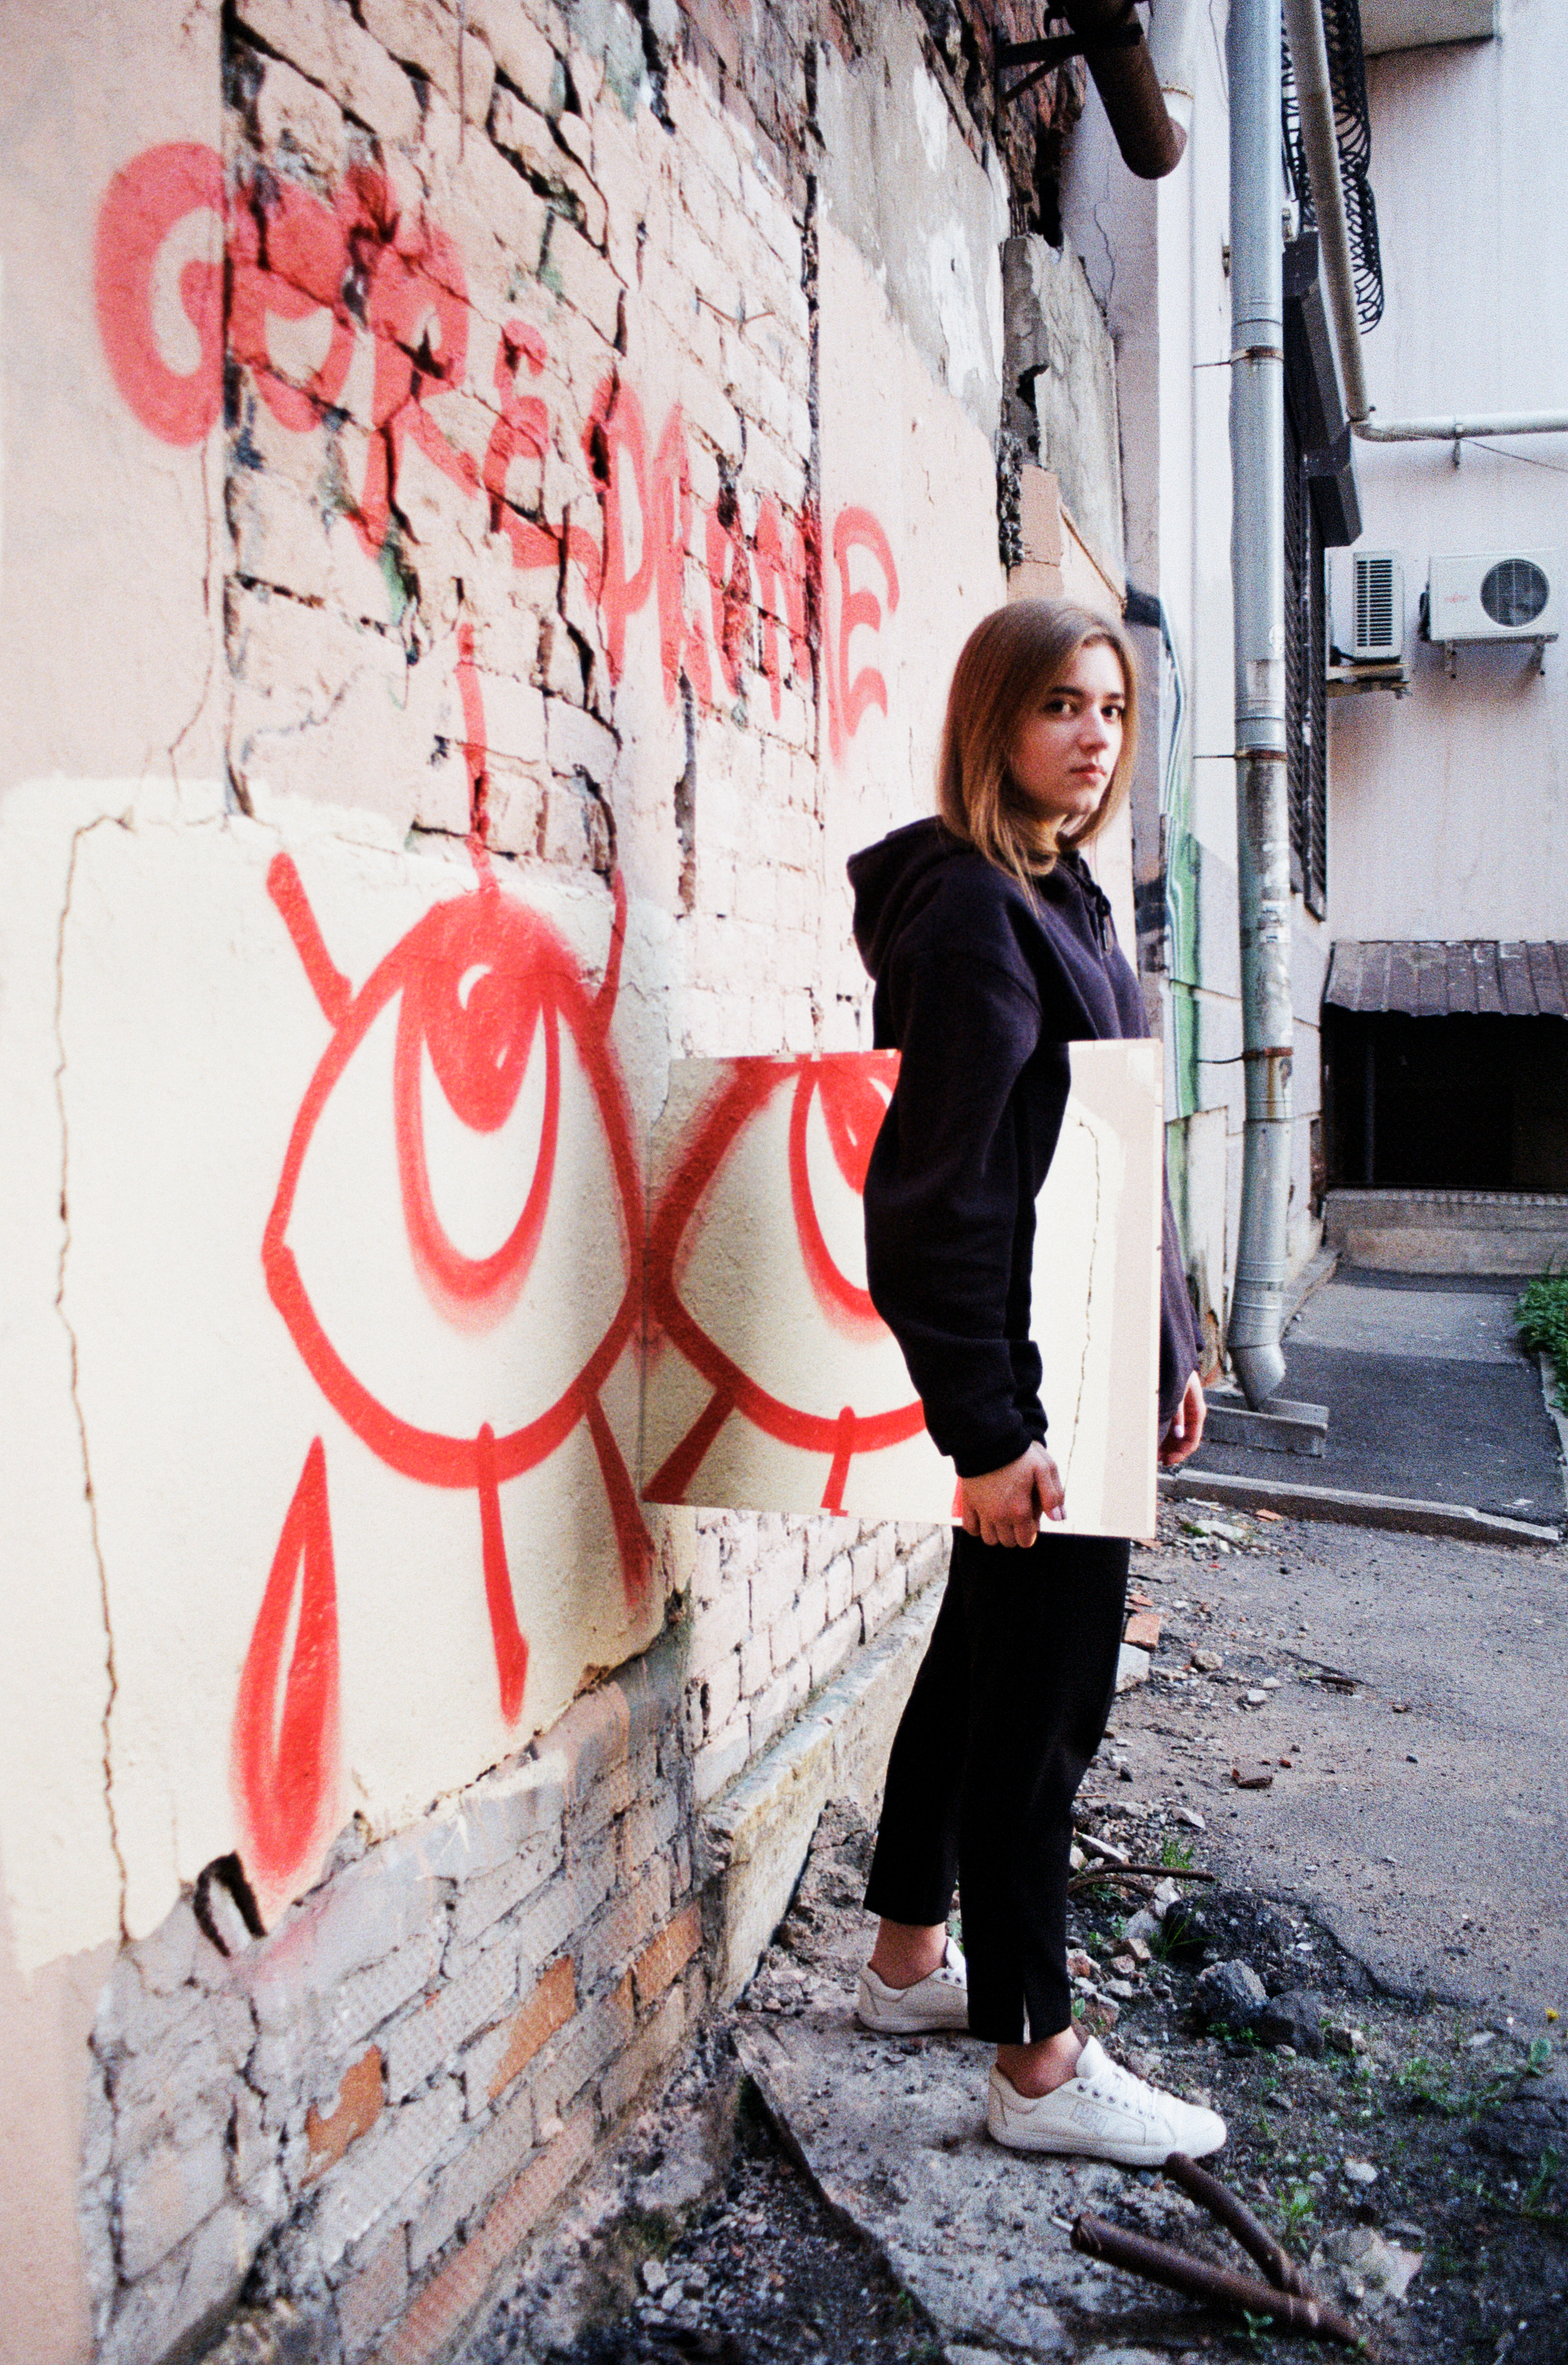 Photo of Woman Wearing a Hoodie and Black Pants Standing Near Wall